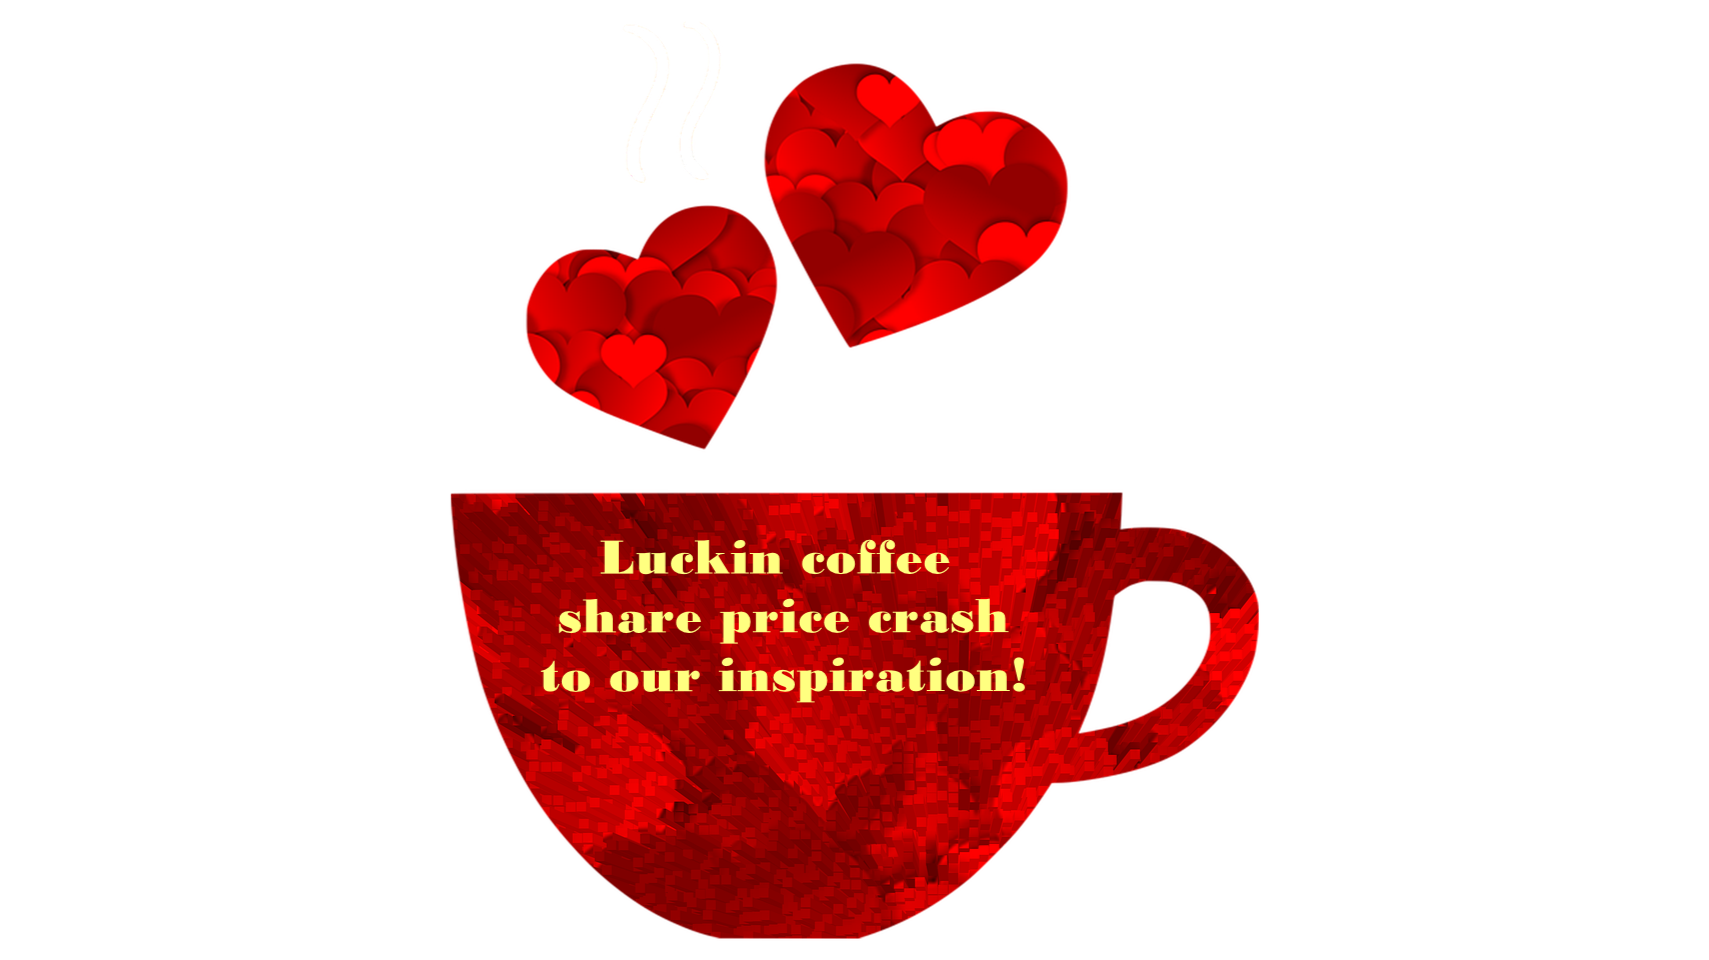 Luckin coffee share price crash to our inspiration!